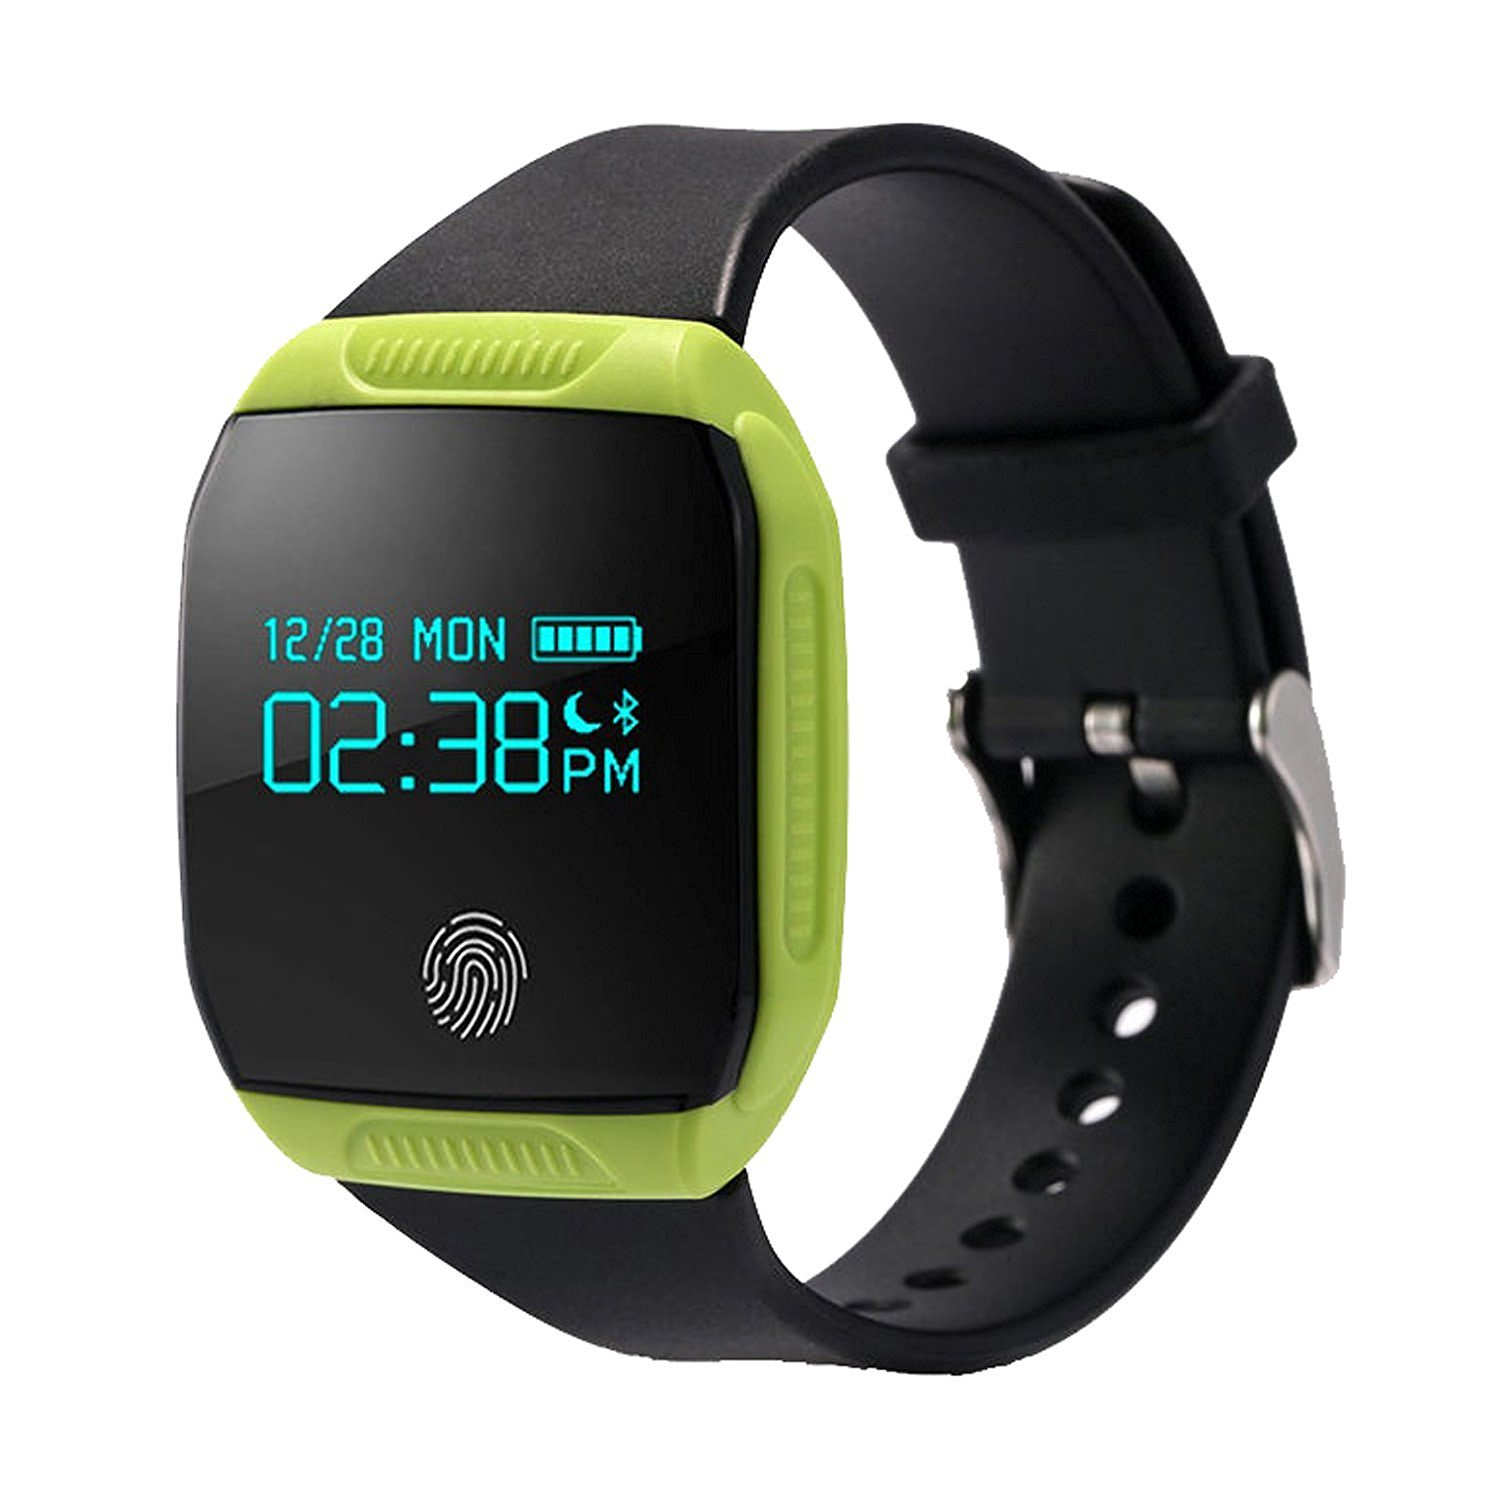 watches fitness primary hub tracker the price hardware best rated trackers orig macworld tracking article reviewed every point at and